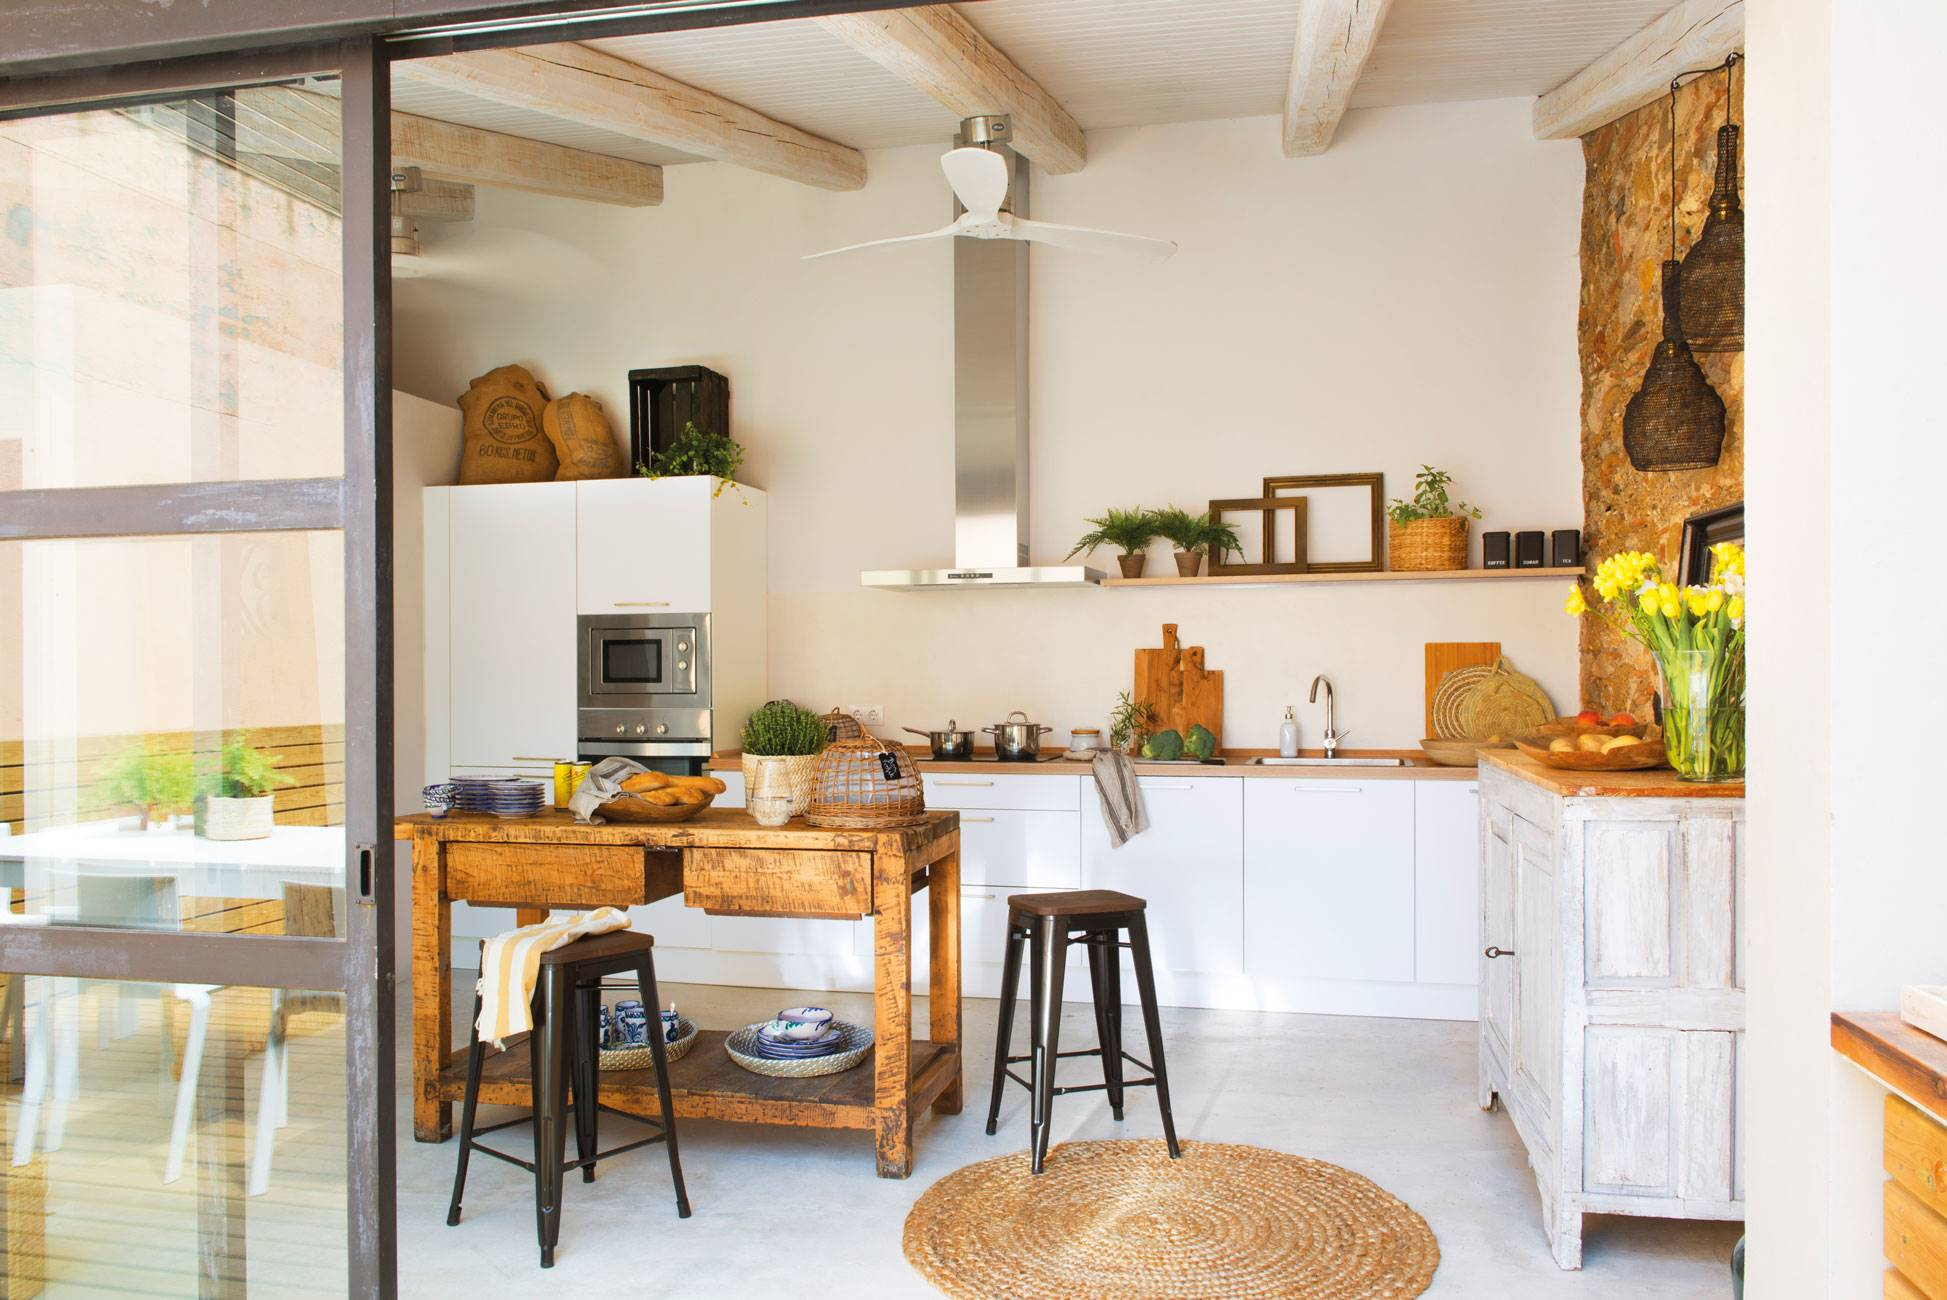 modern-rustic-kitchen-with-fan-and-old-table-as-island 438519. Very rustic